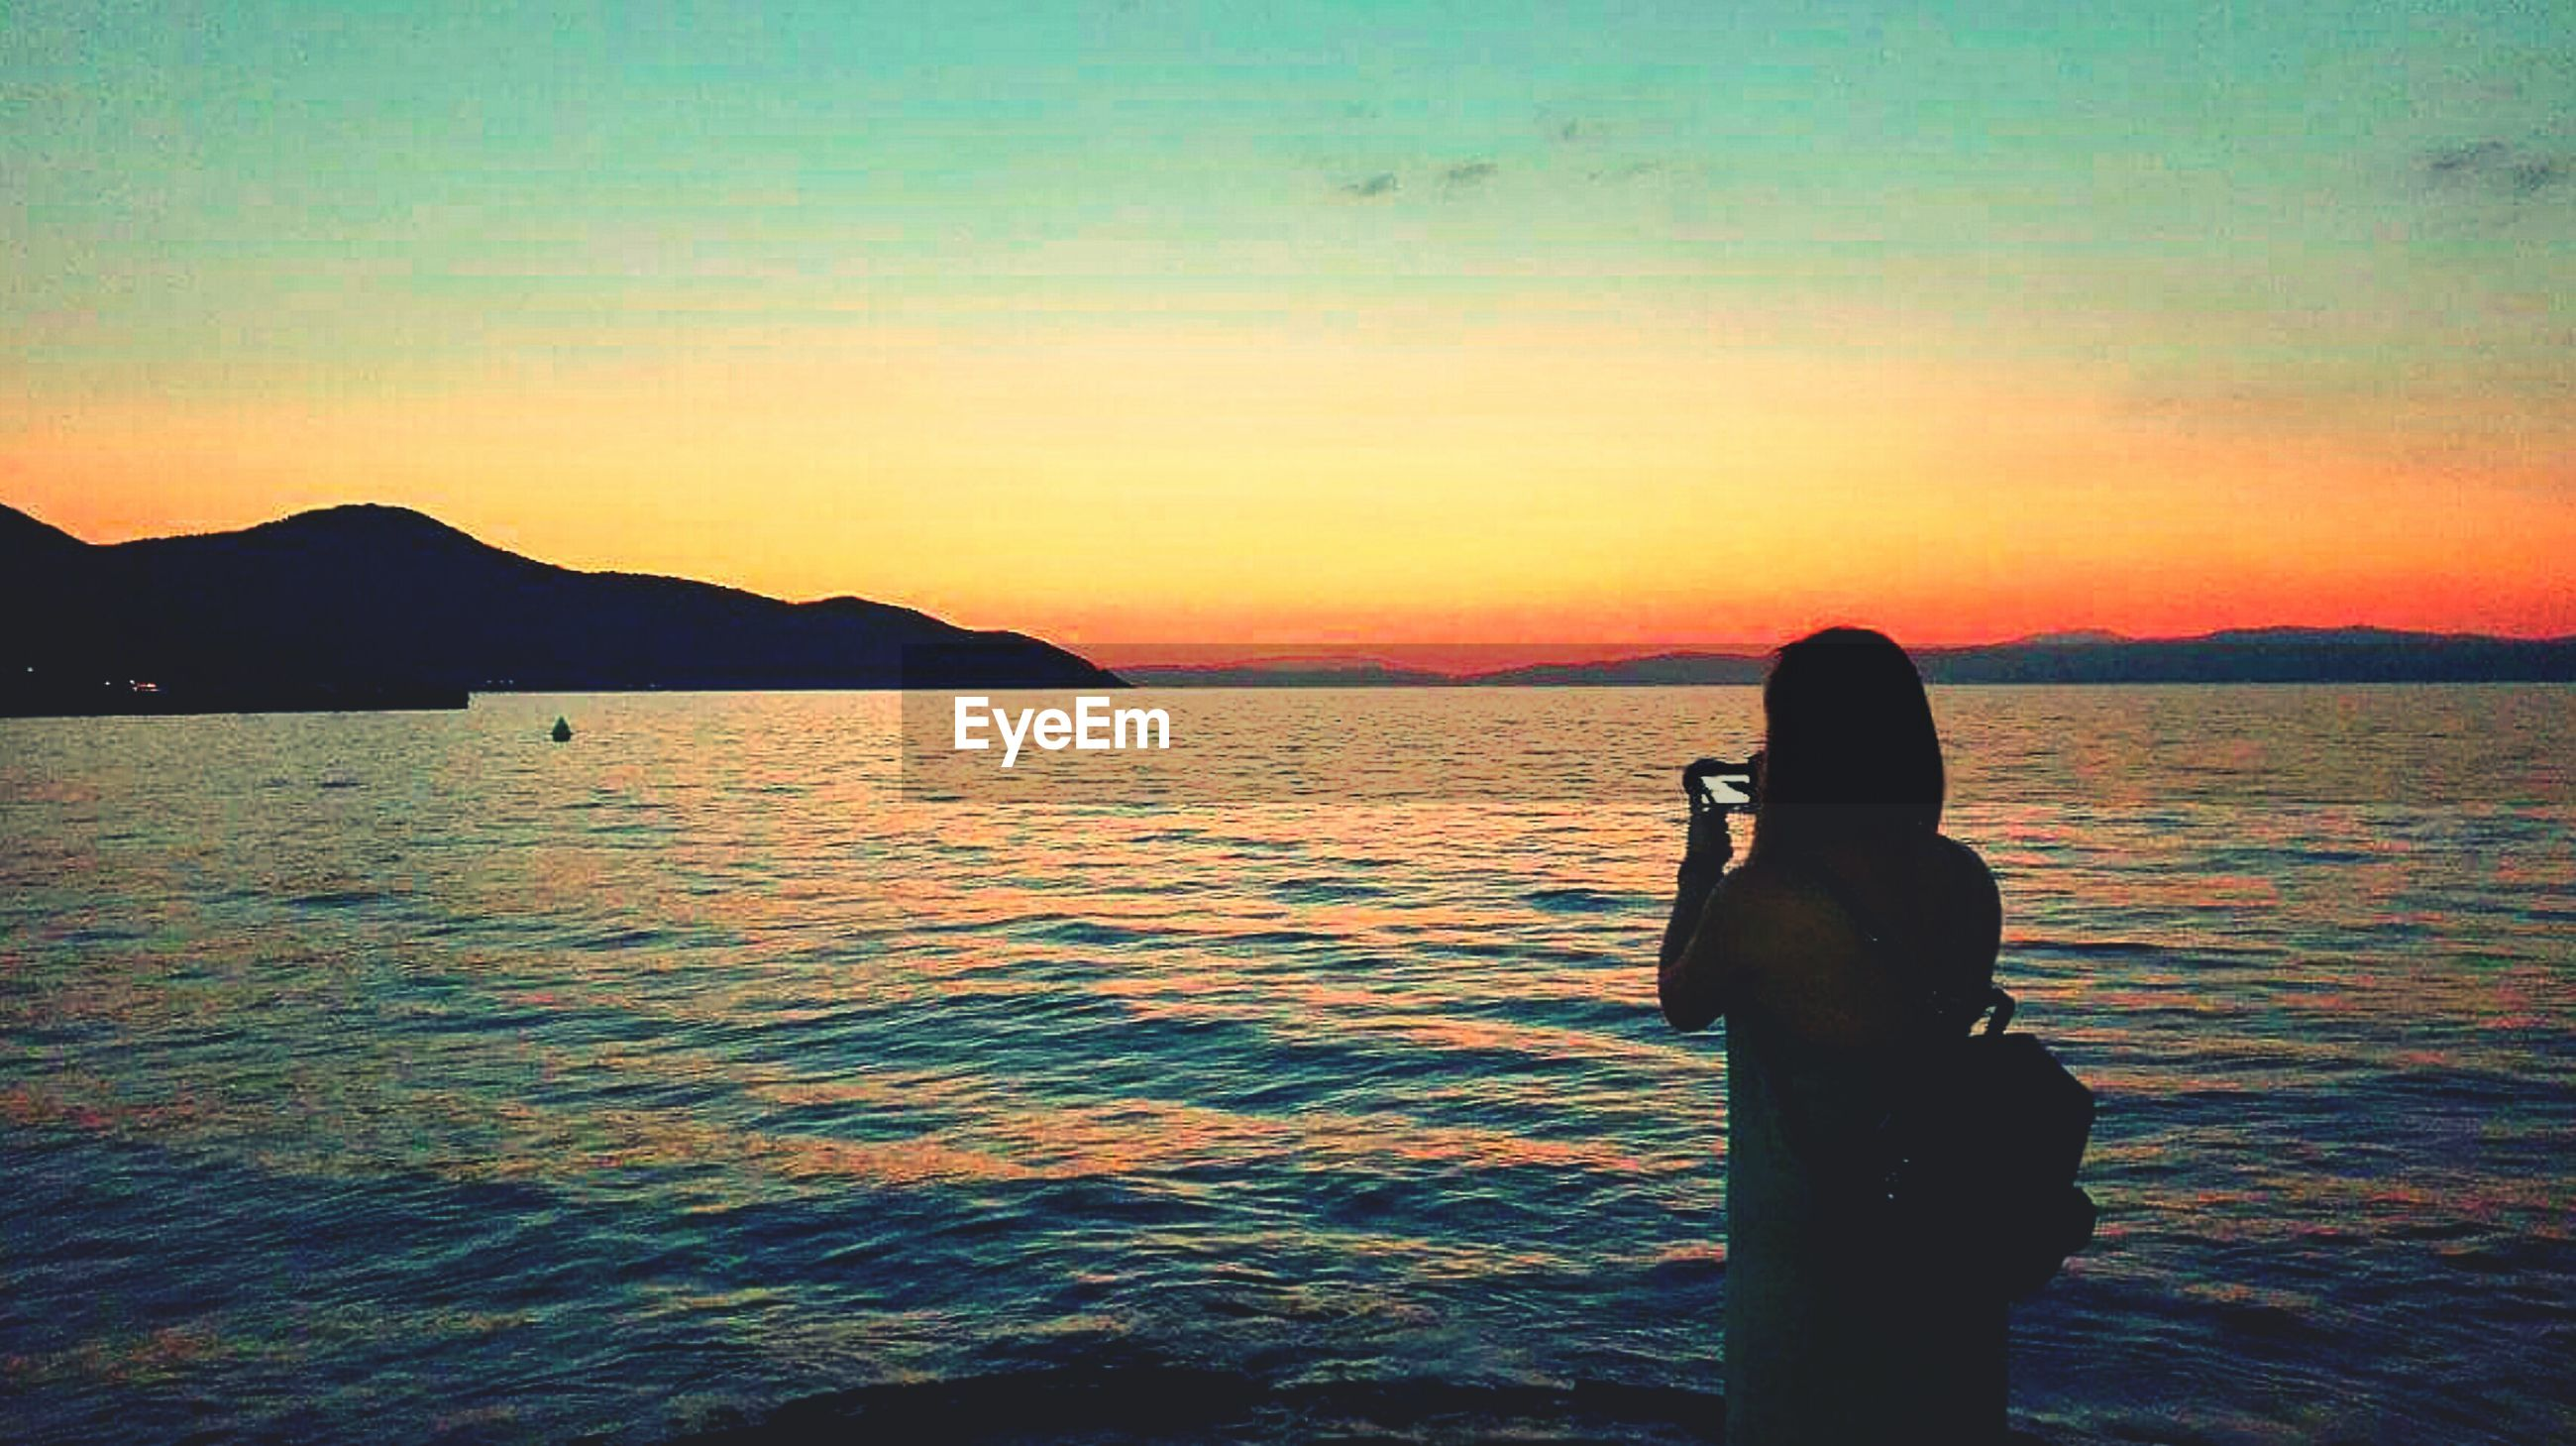 Rear view of silhouette young woman photographing with mobile phone while standing in sea against sky during sunset